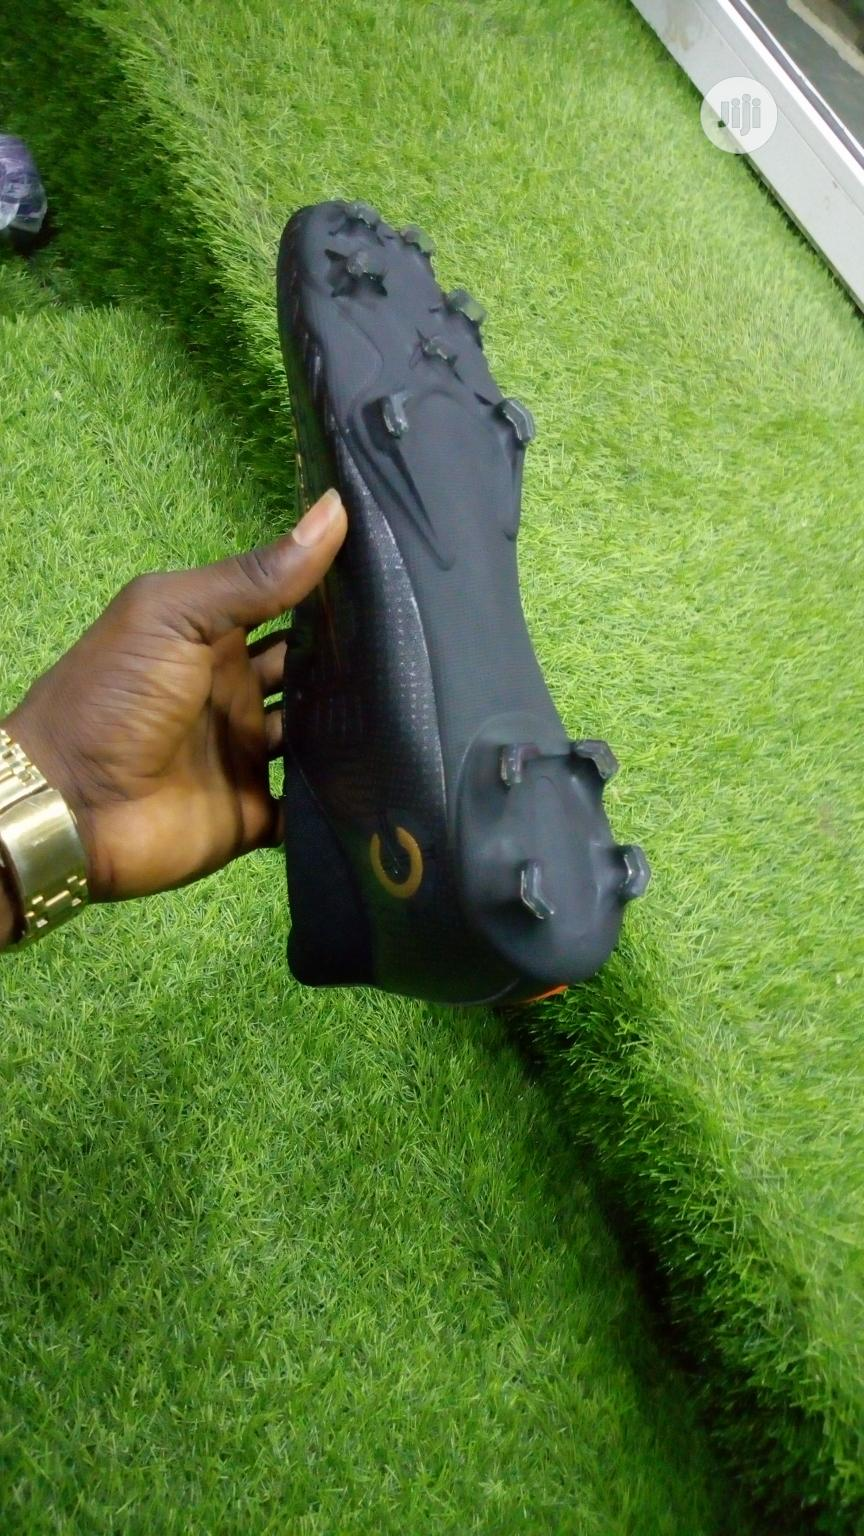 Nike Football Boot | Shoes for sale in Yaba, Lagos State, Nigeria